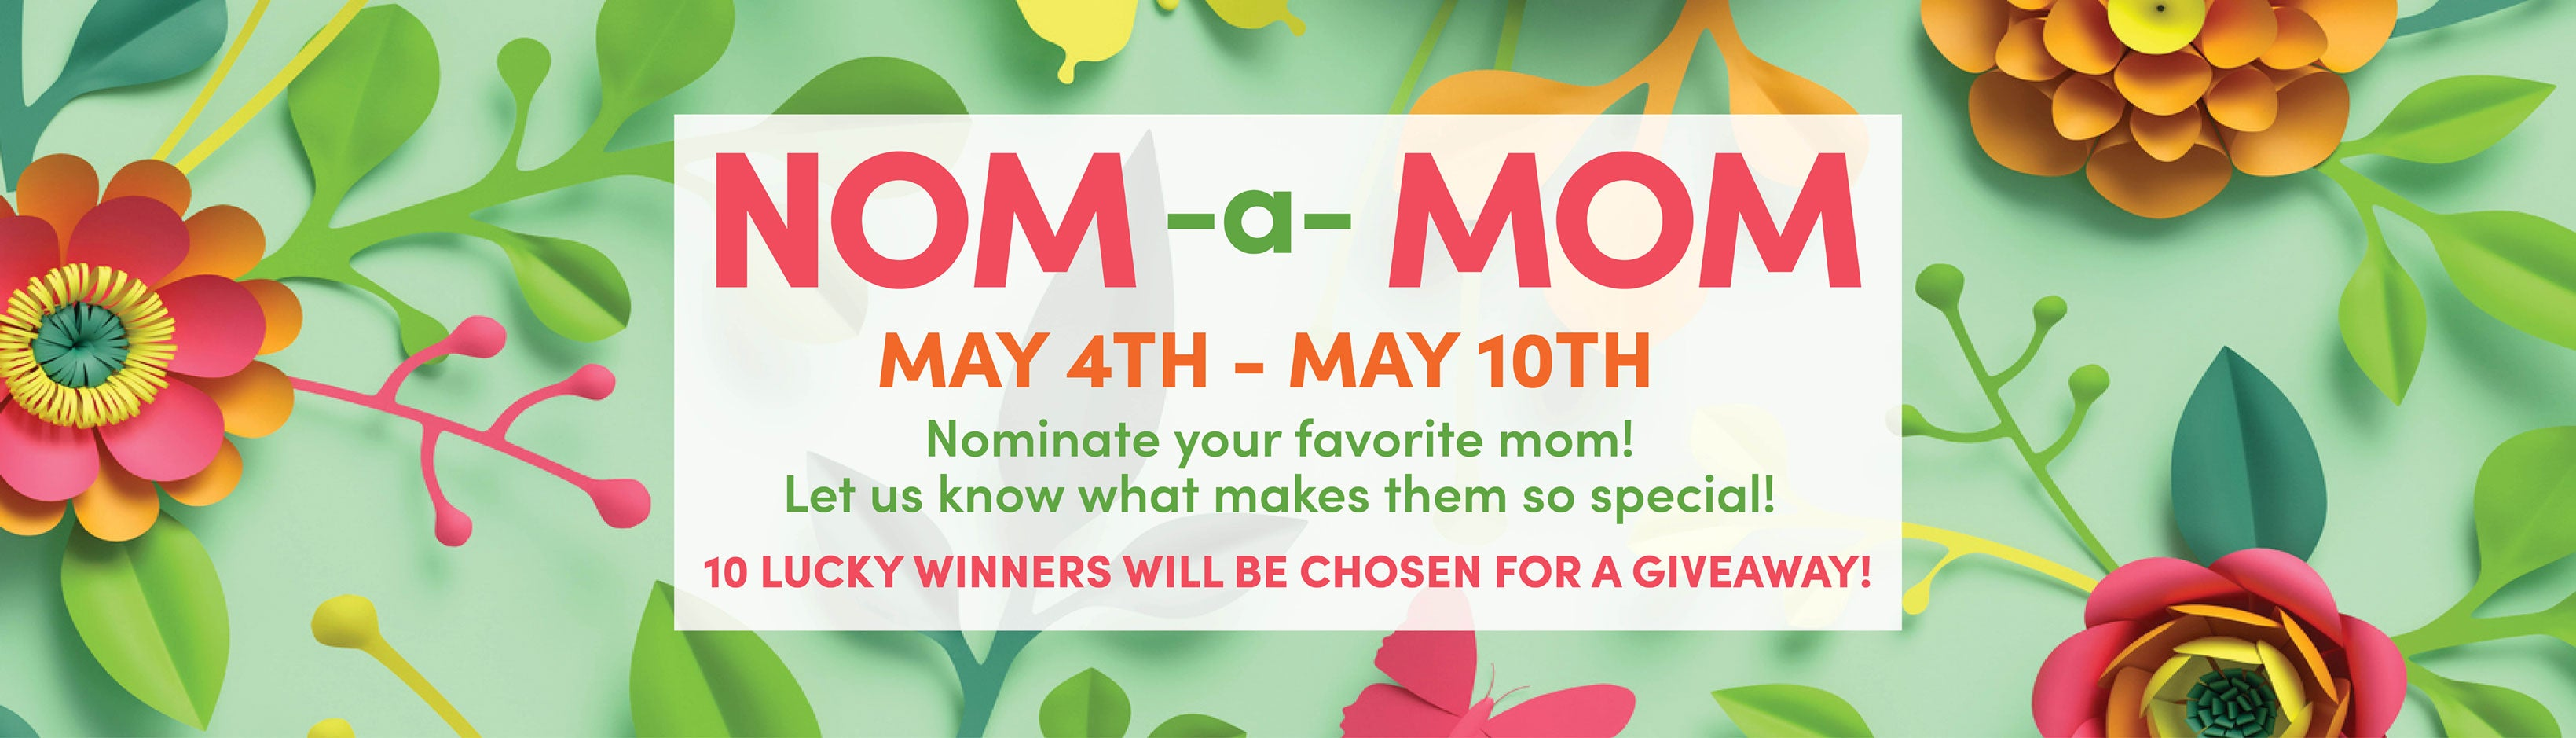 GREEN GOO'S NOM-A-MOM SWEEPSTAKES – Green Goo